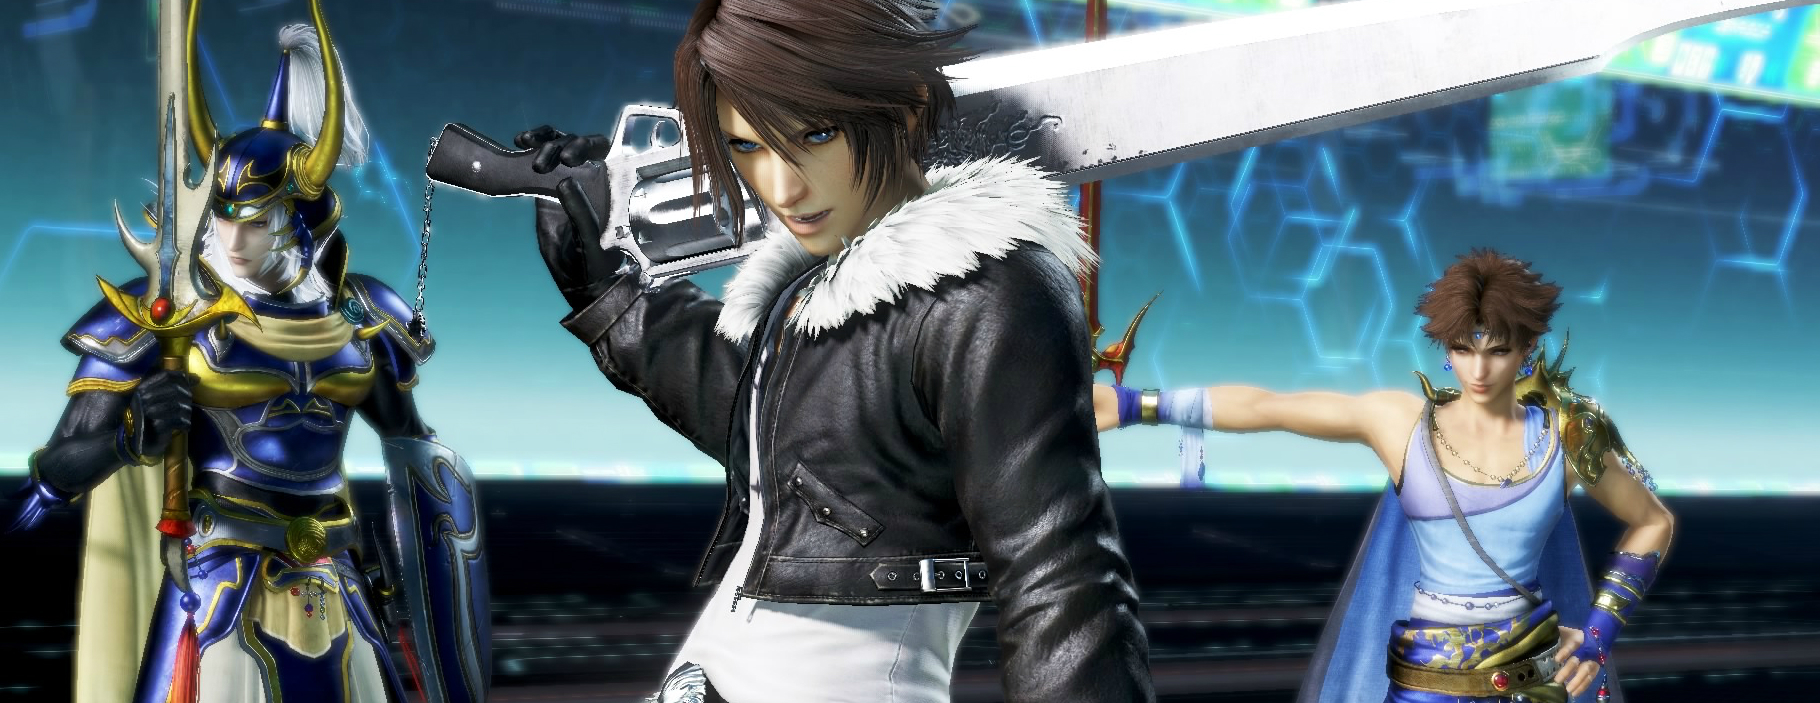 Dissidia Final Fantasy NT's open beta is coming to the west just before launch screenshot